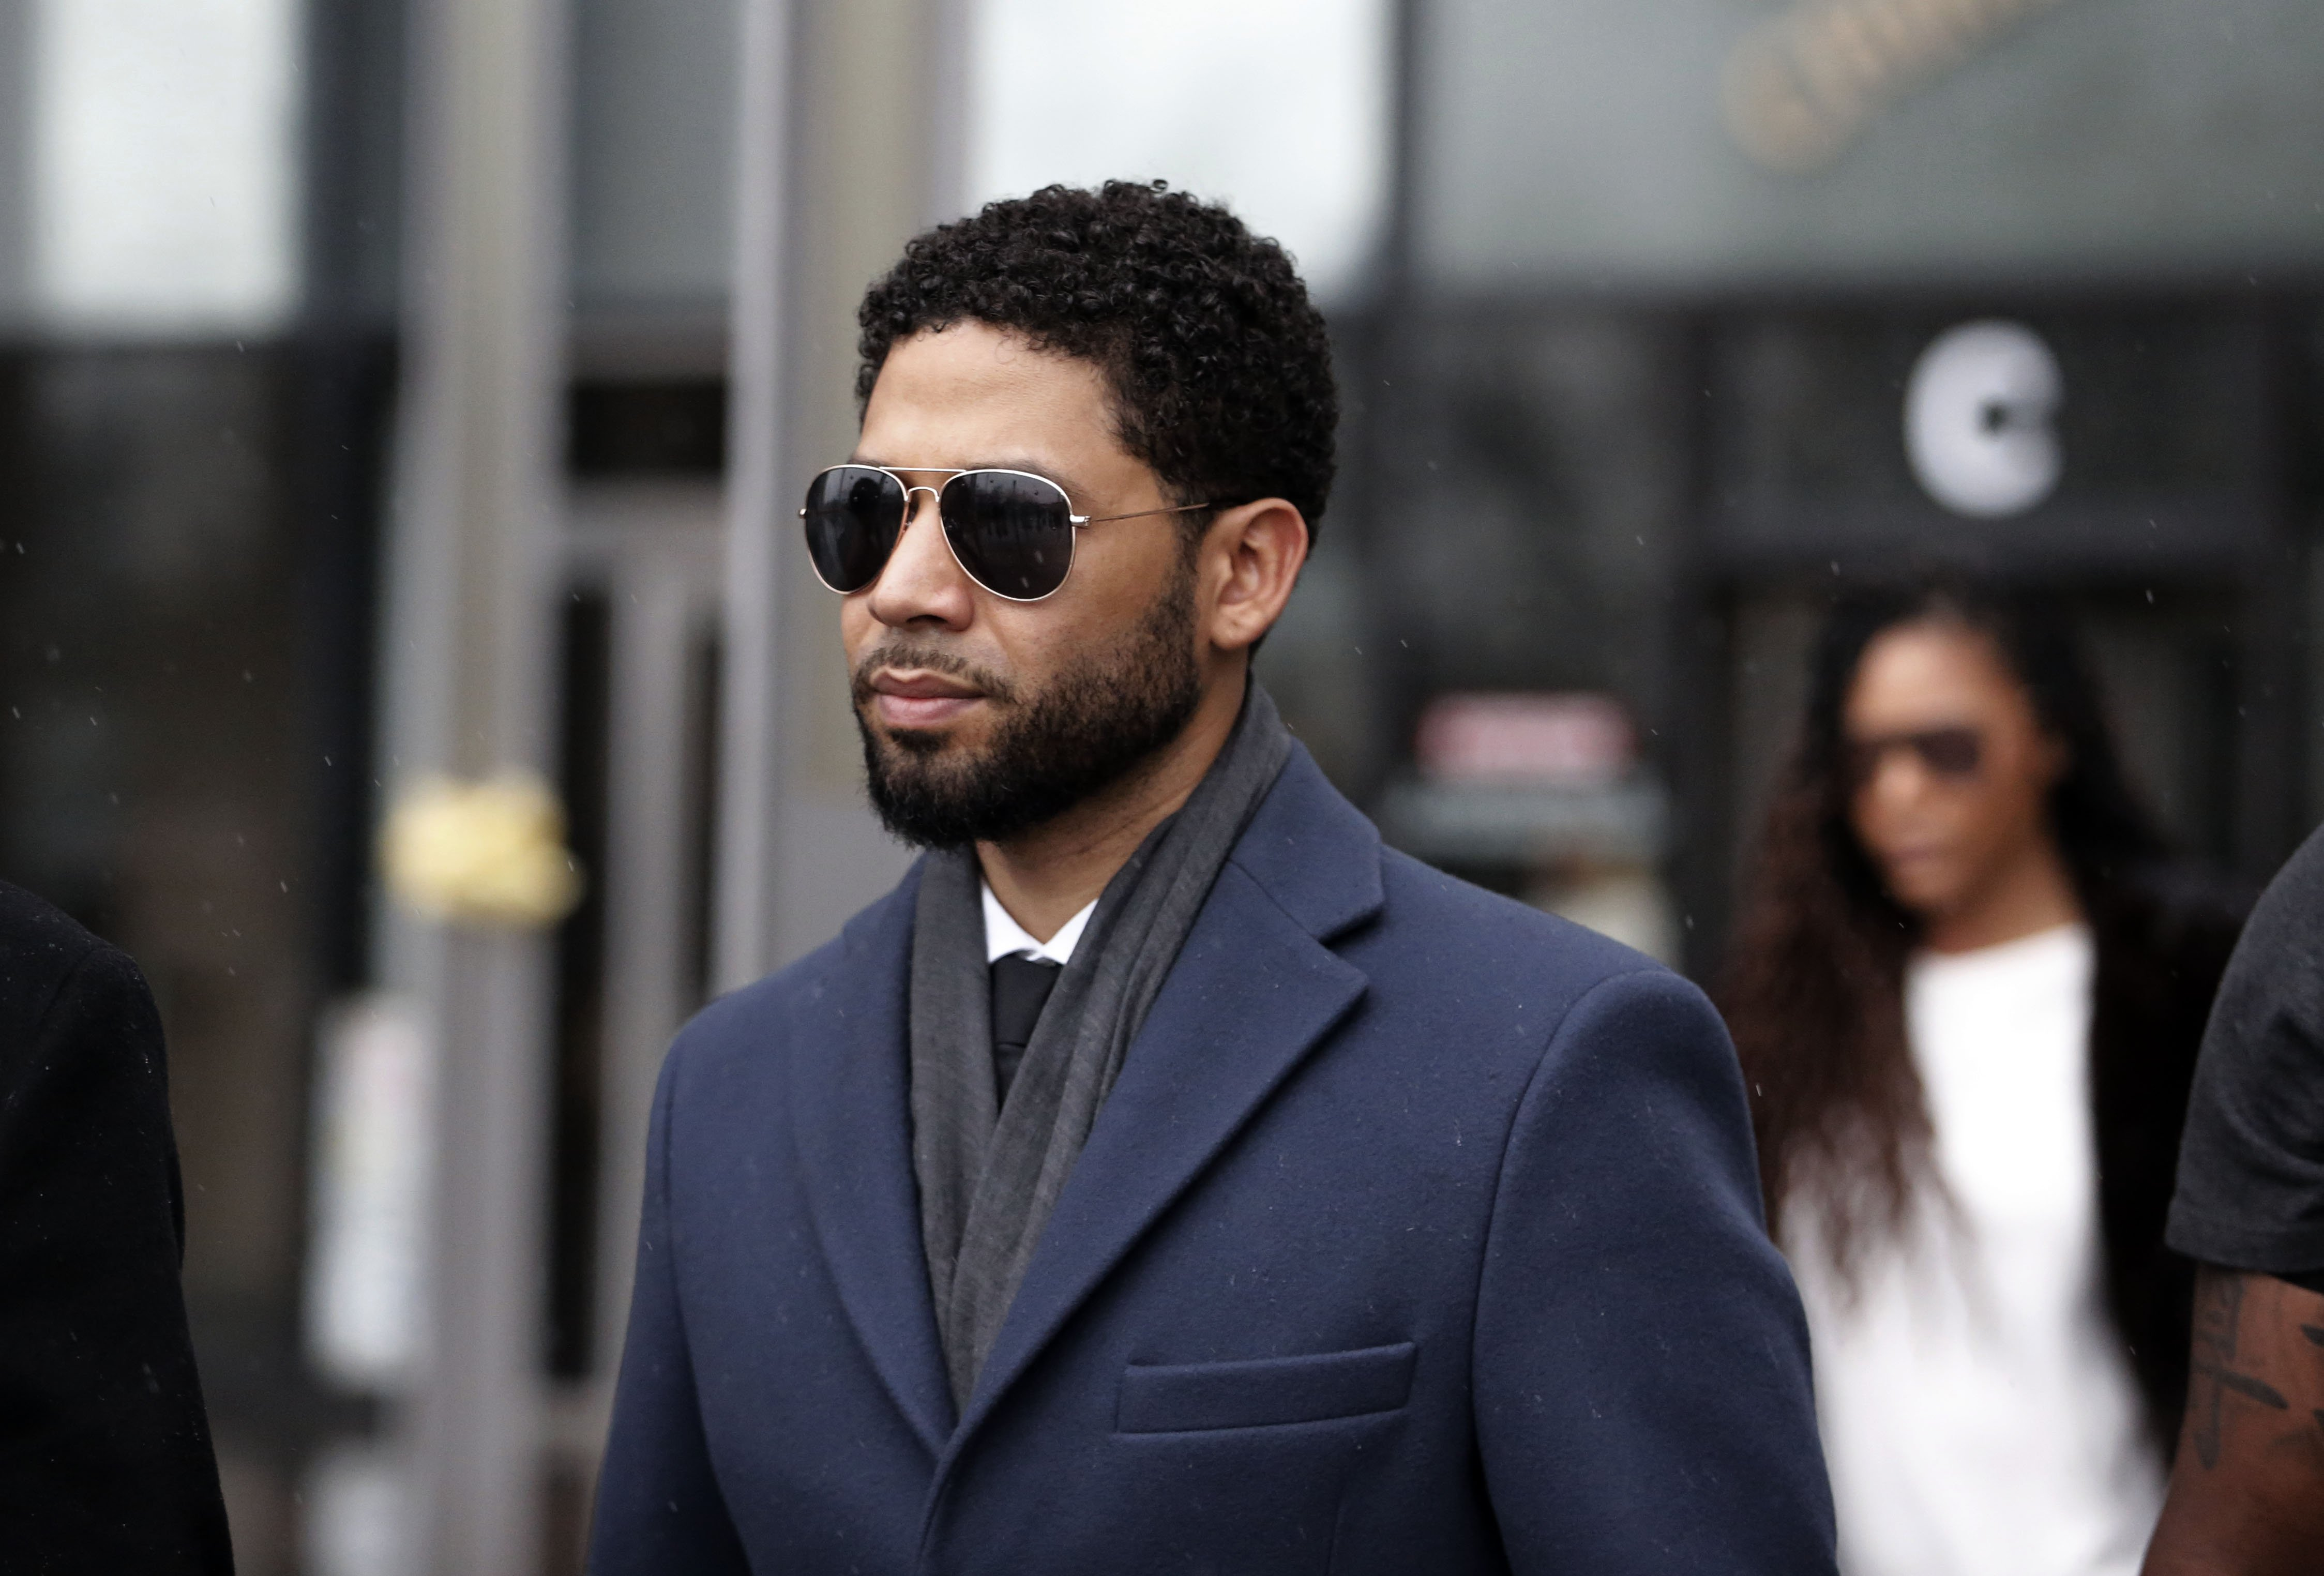 Jussie Smollett leaves Leighton Criminal Courthouse after his court appearance on March 14, 2019. | Photo: GettyImages